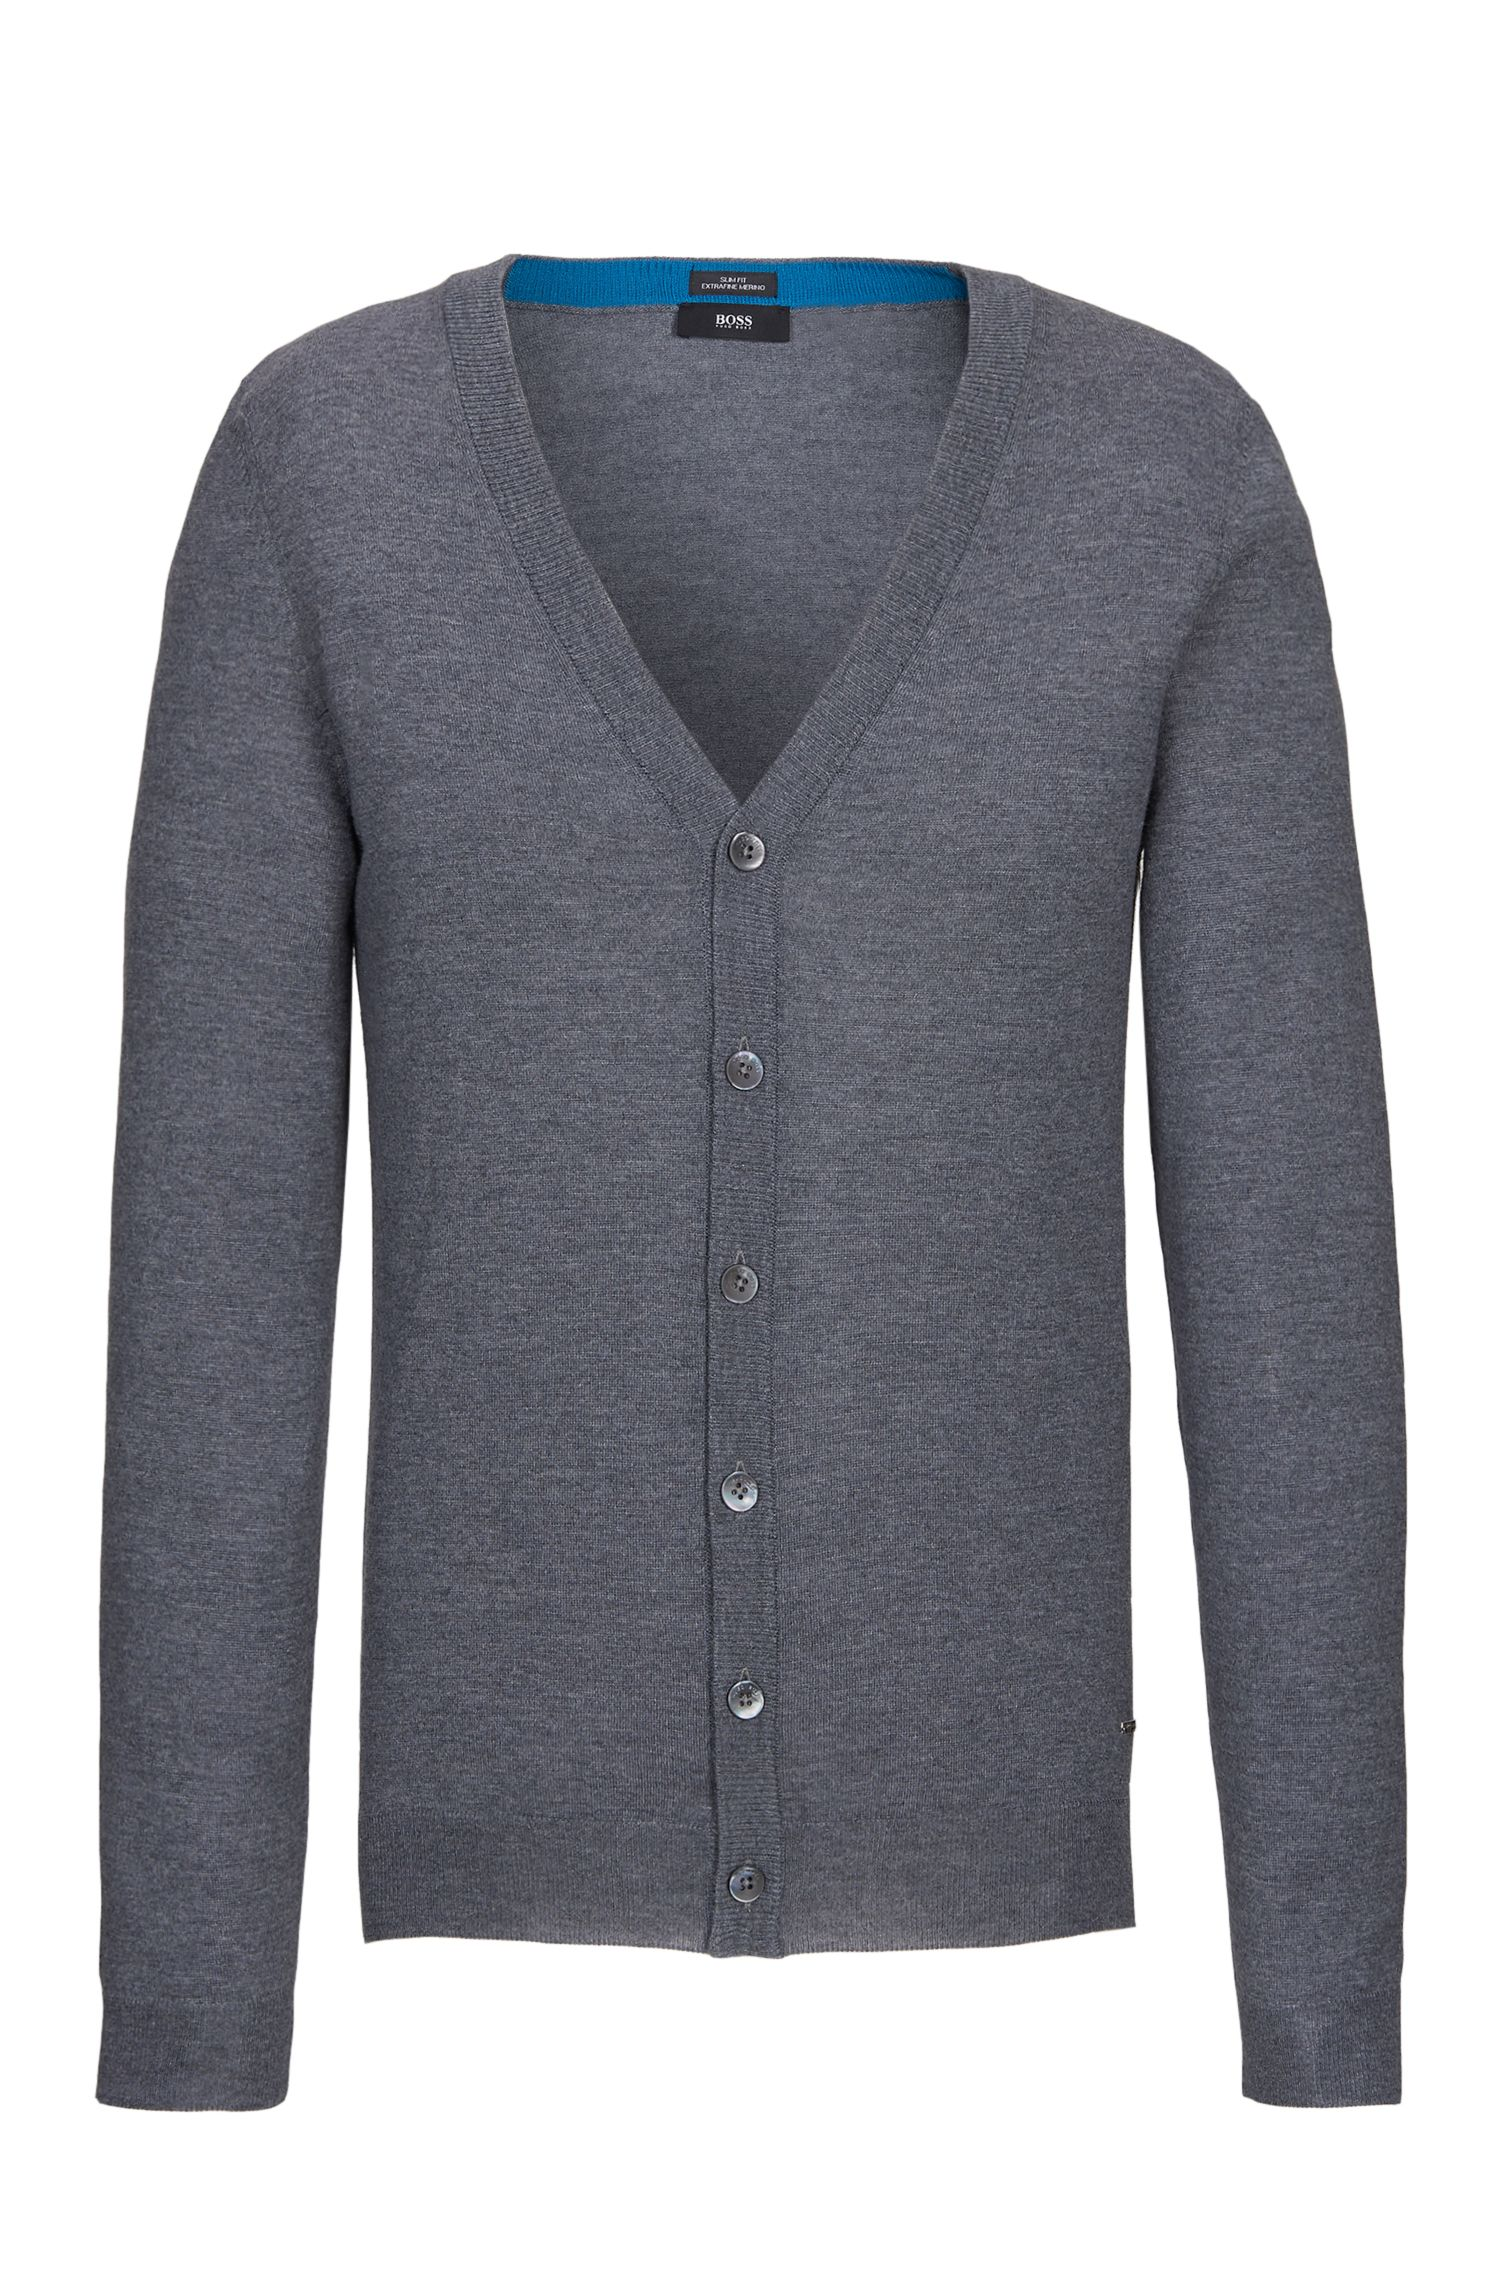 'Mardon-M' | Slim Fit, Extra-Fine Virgin Merino Wool Sweater